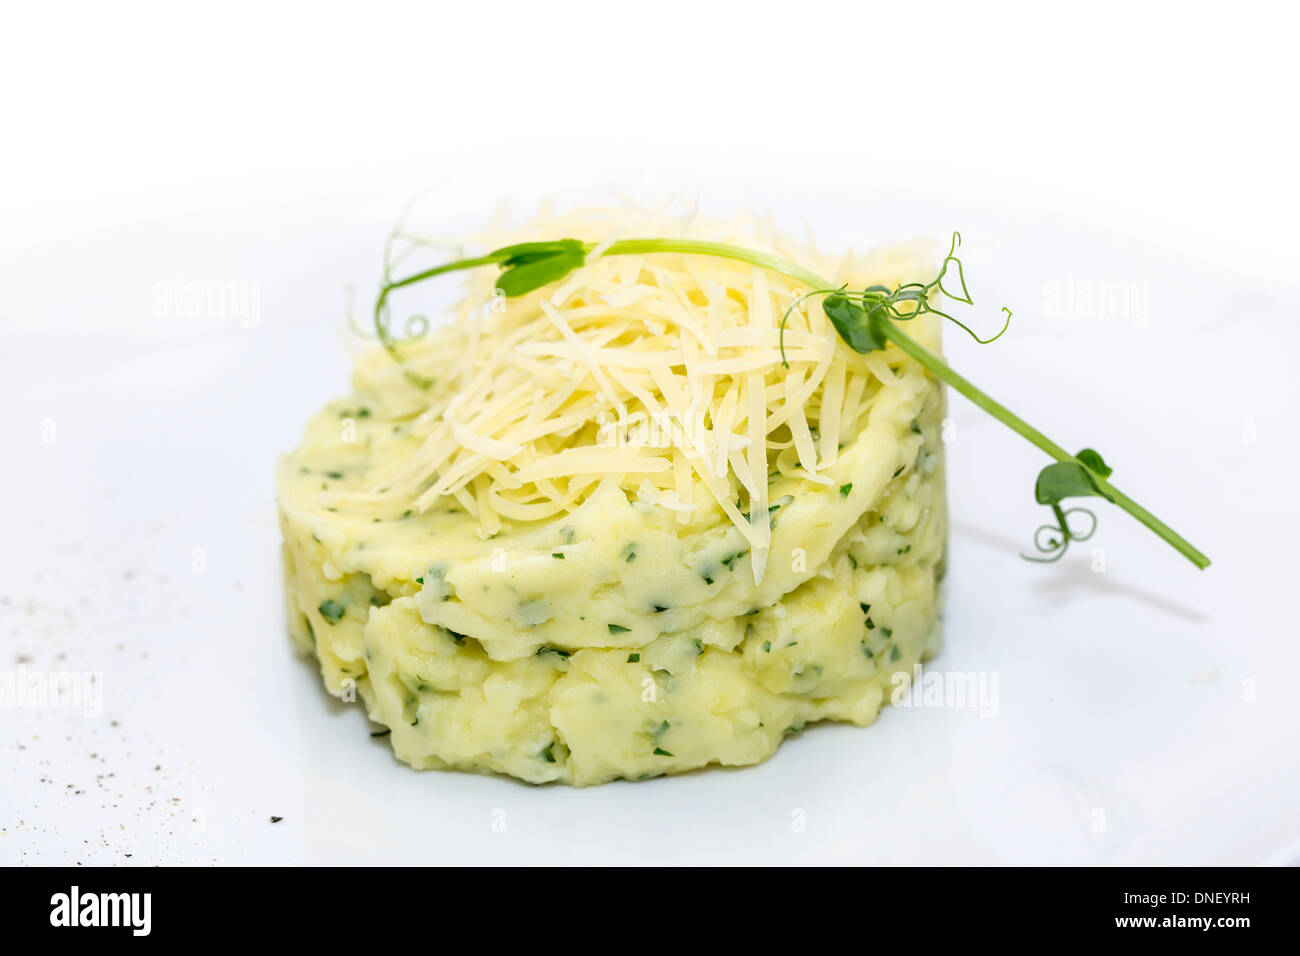 mashed potatoes with herbs and cheese on a white background in the restaurant - Stock Image